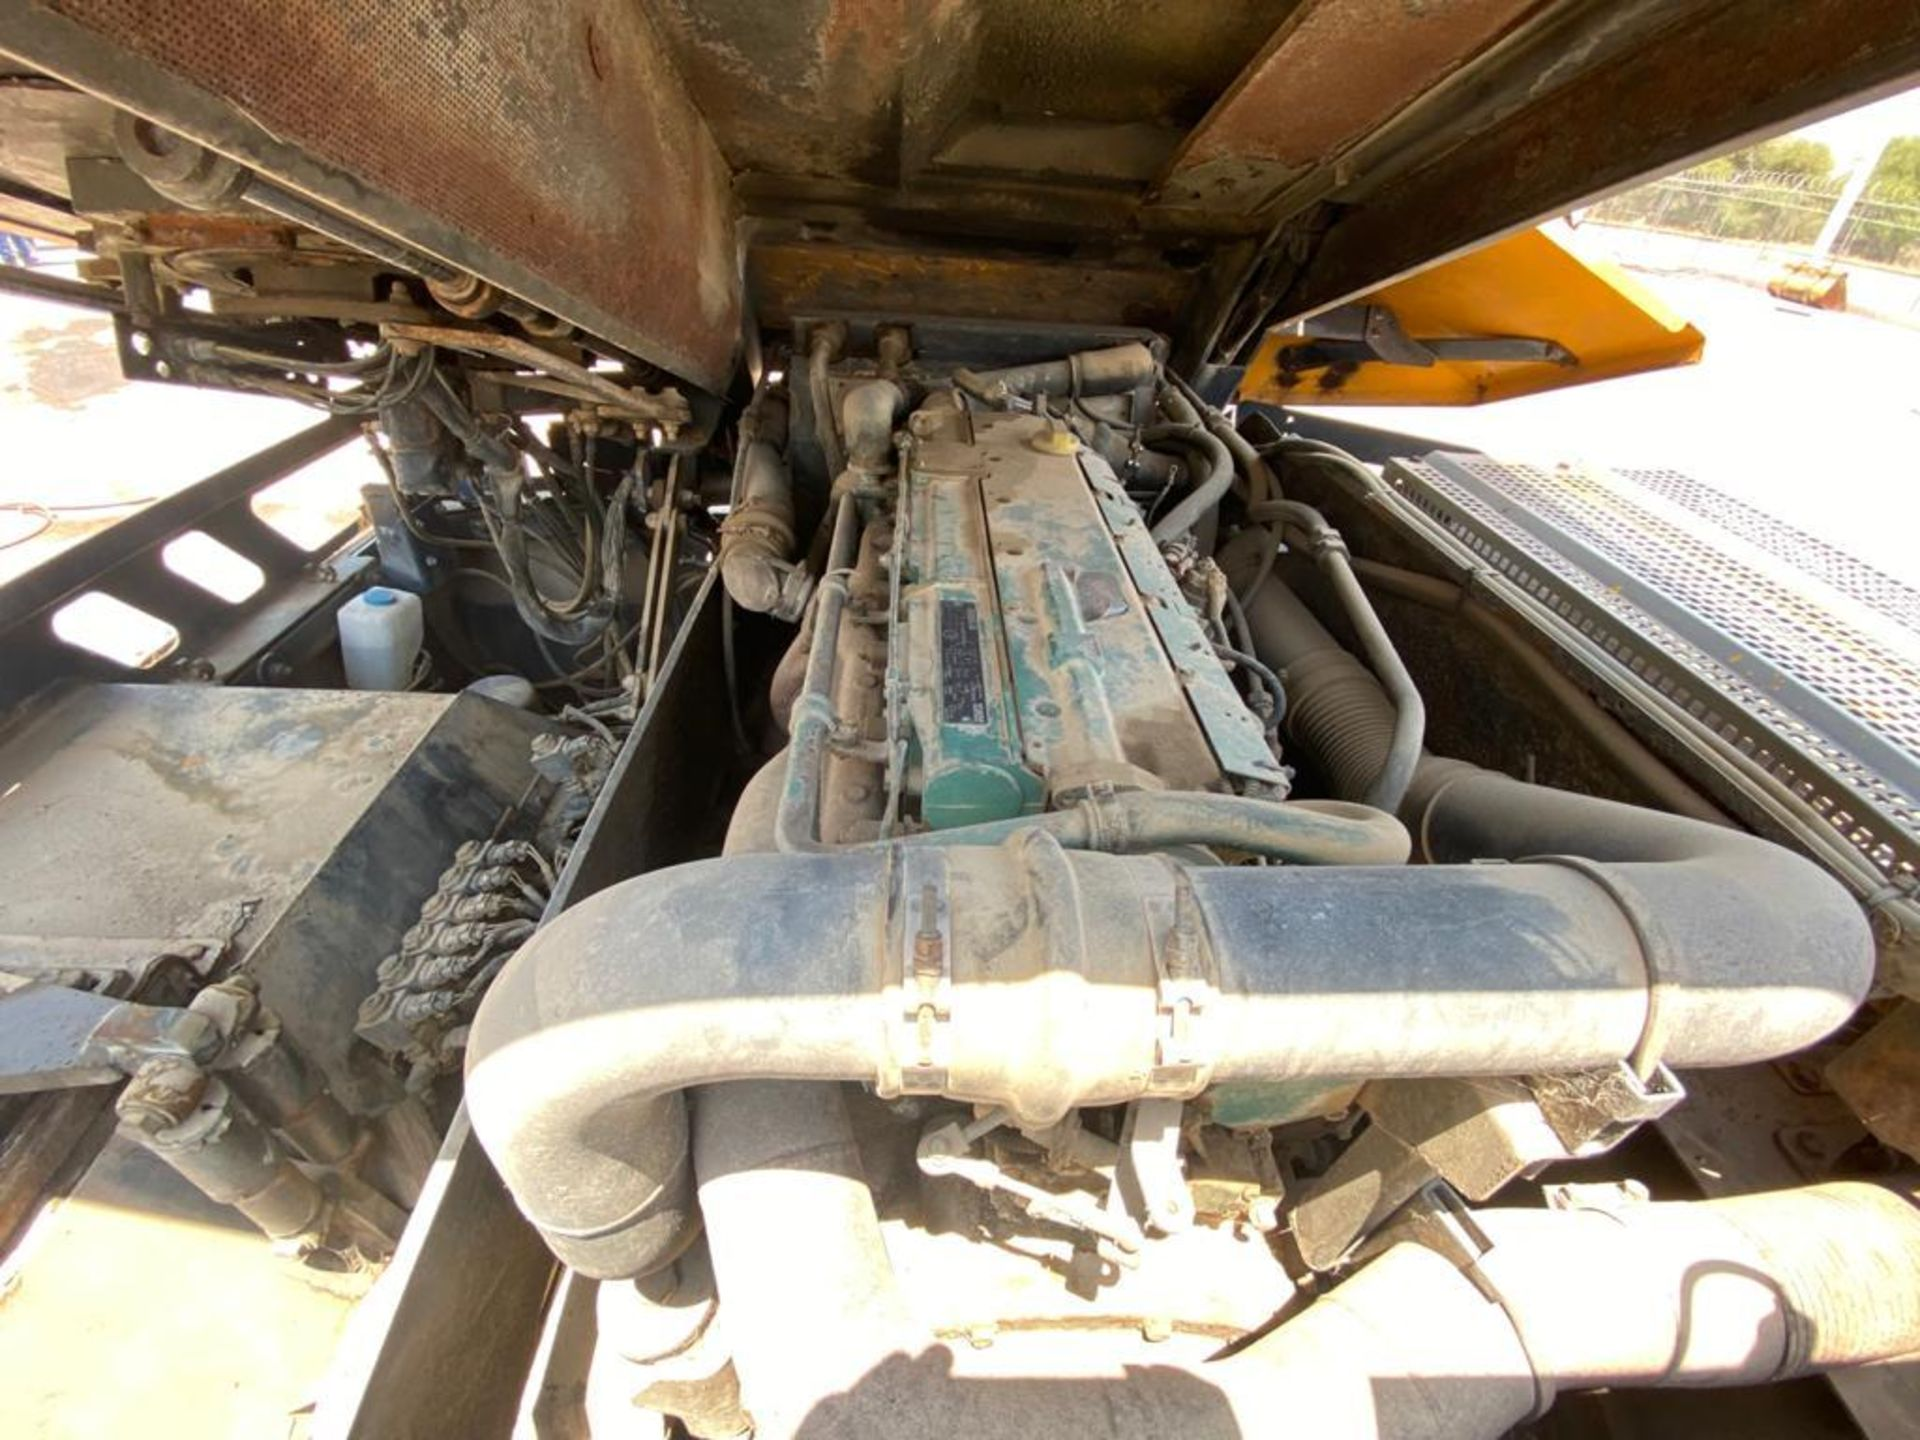 Terberg Capacity 2002 Terminal Tractor, automatic transmission - Image 41 of 57